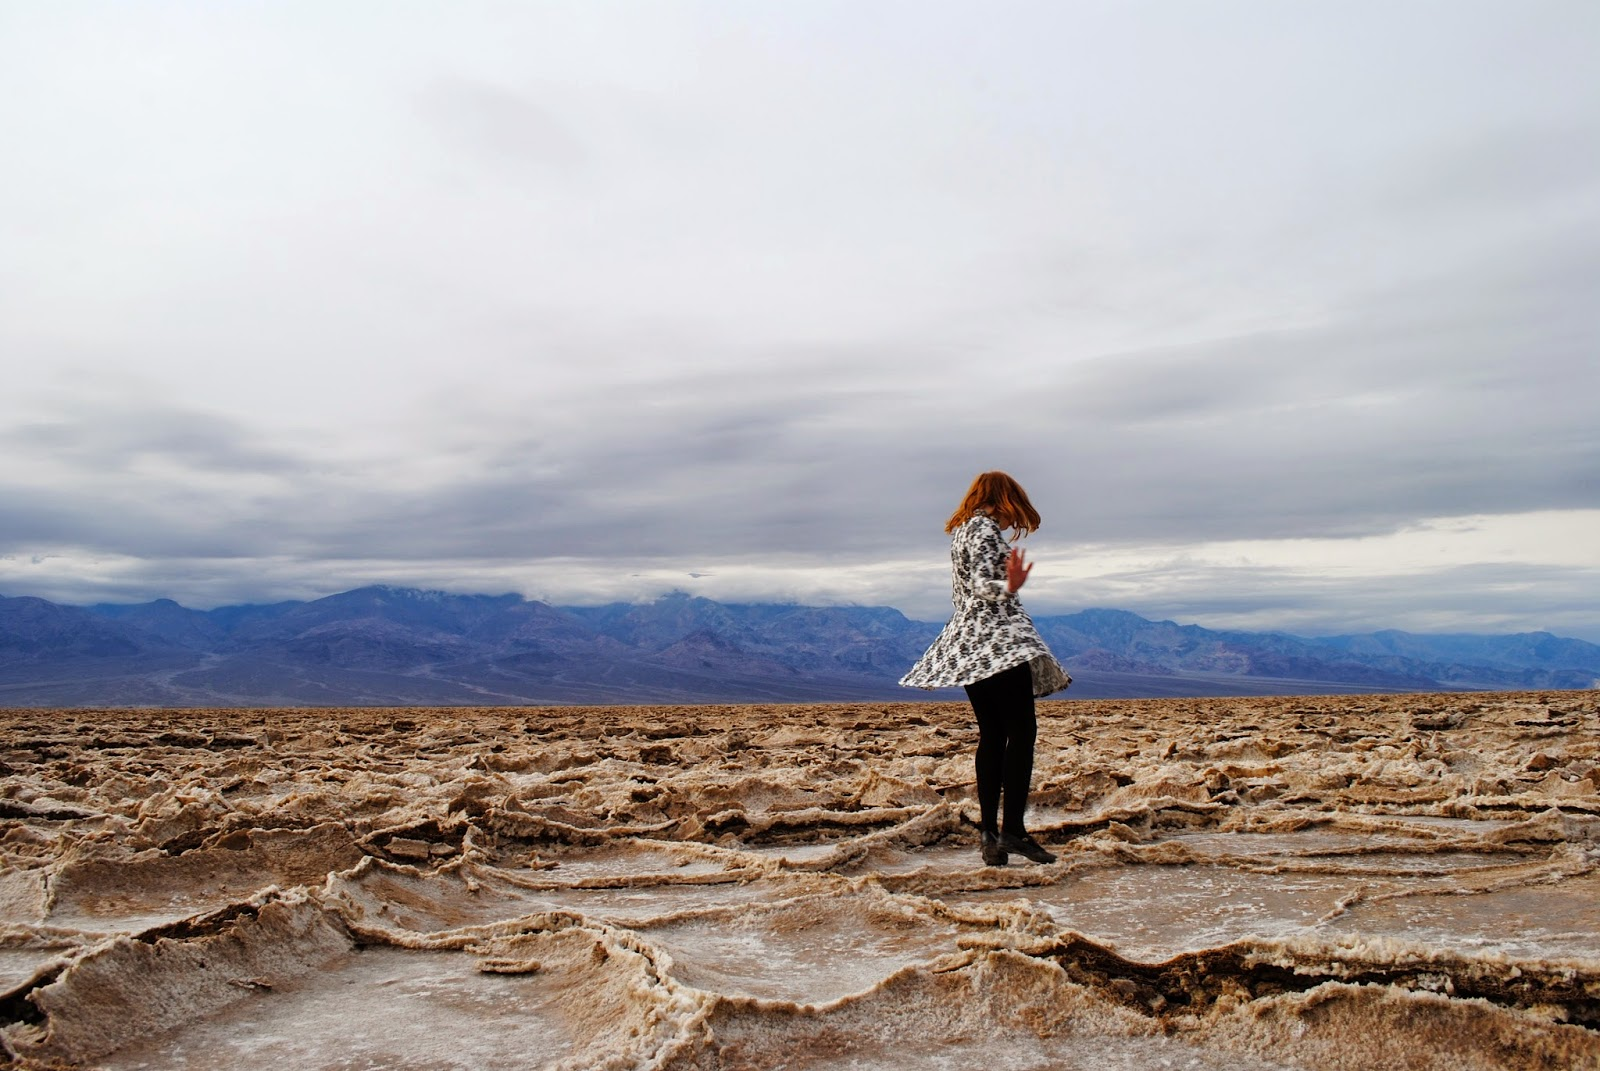 Visiting the Salt Flats at Death Valley National Park on a day trip from Las Vegas